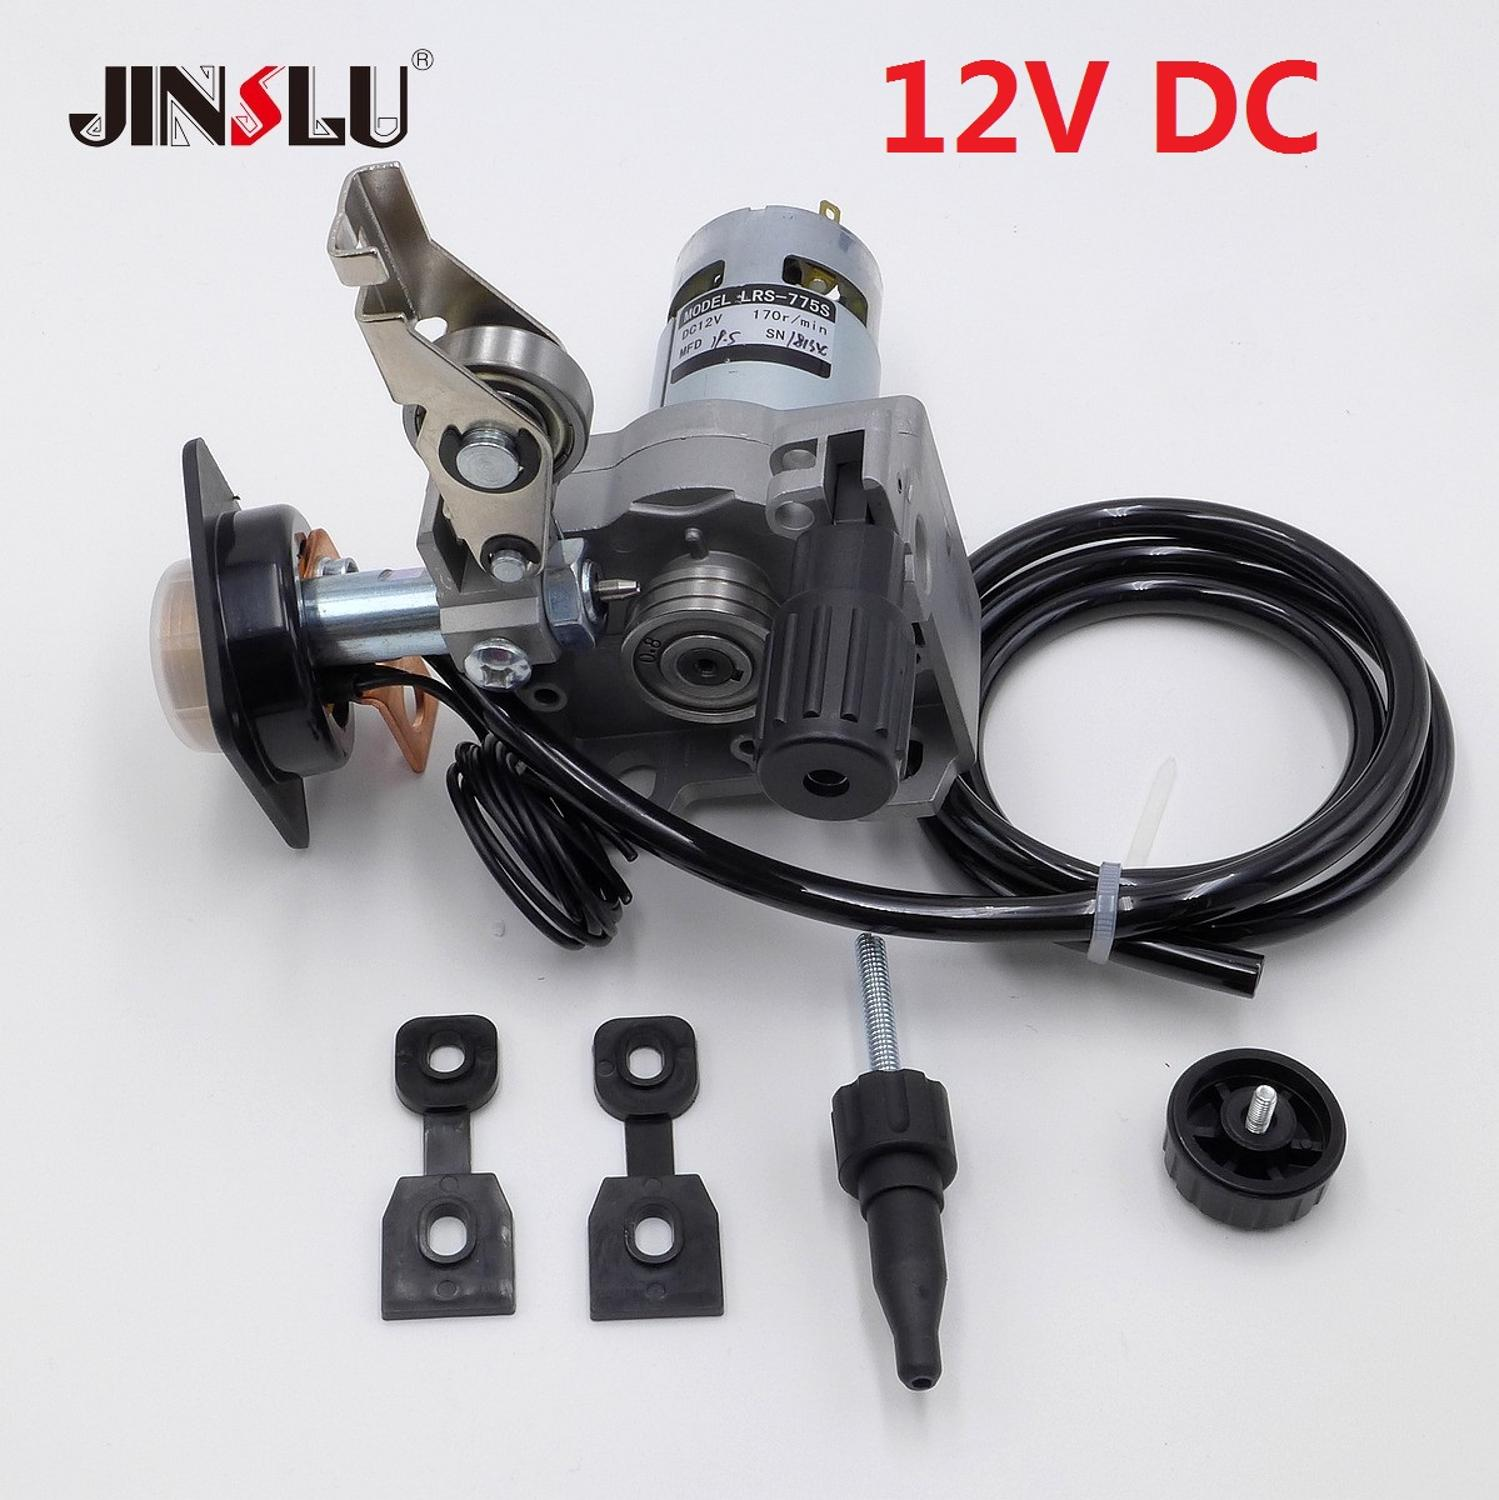 RU Warehouse 12V 0.8-1.0mm Wire Feeder Assembly Wire Feed Welding Motor MIG MAG Welder Euro Connector MIG-160 ZY775